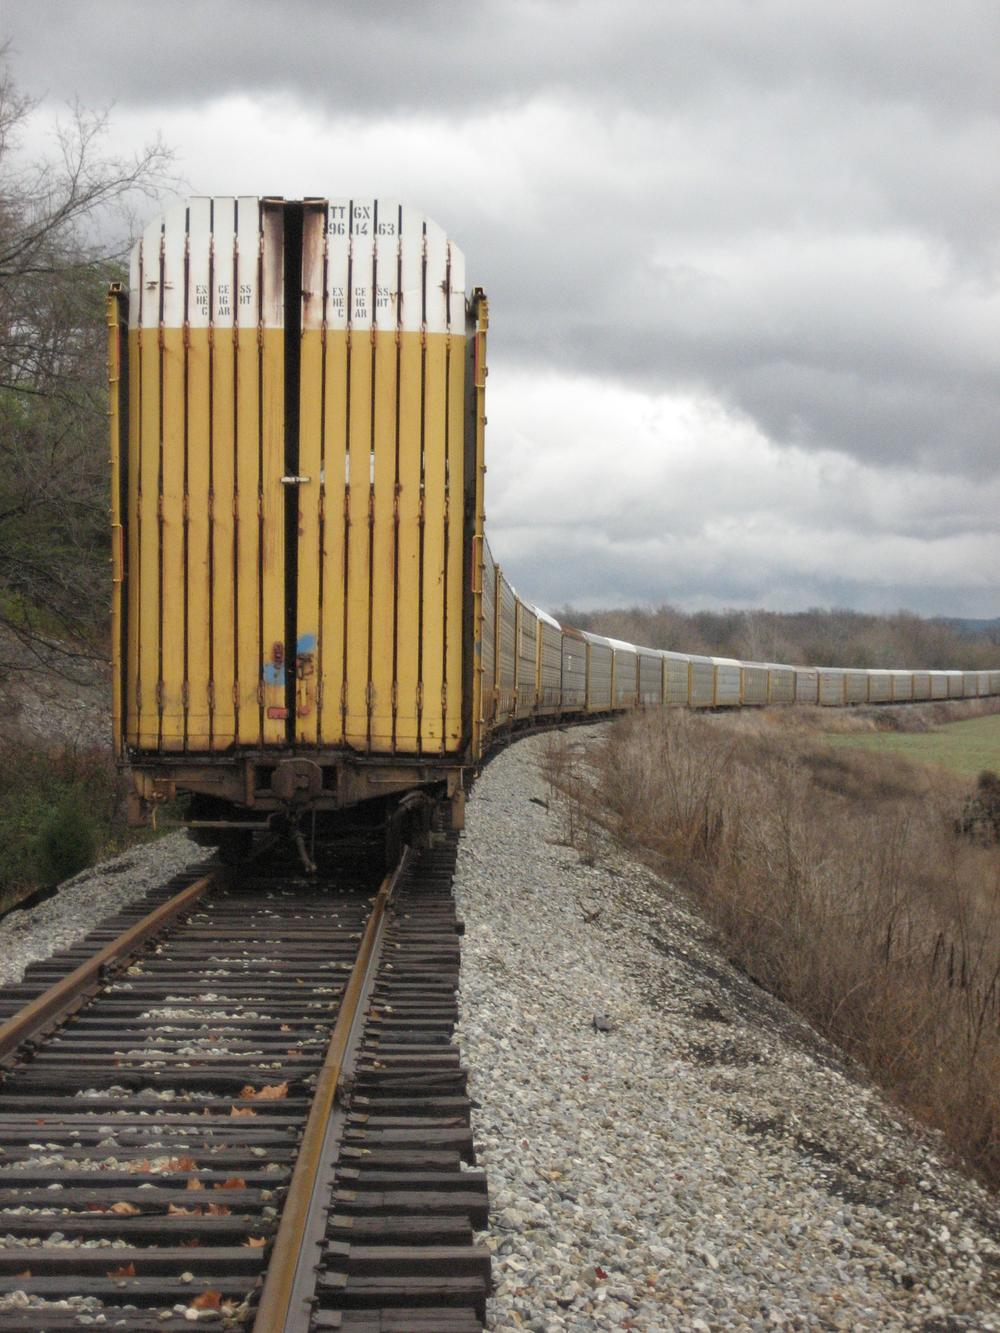 Freight Cars in Kentucky courtesy of Bob Carroll.